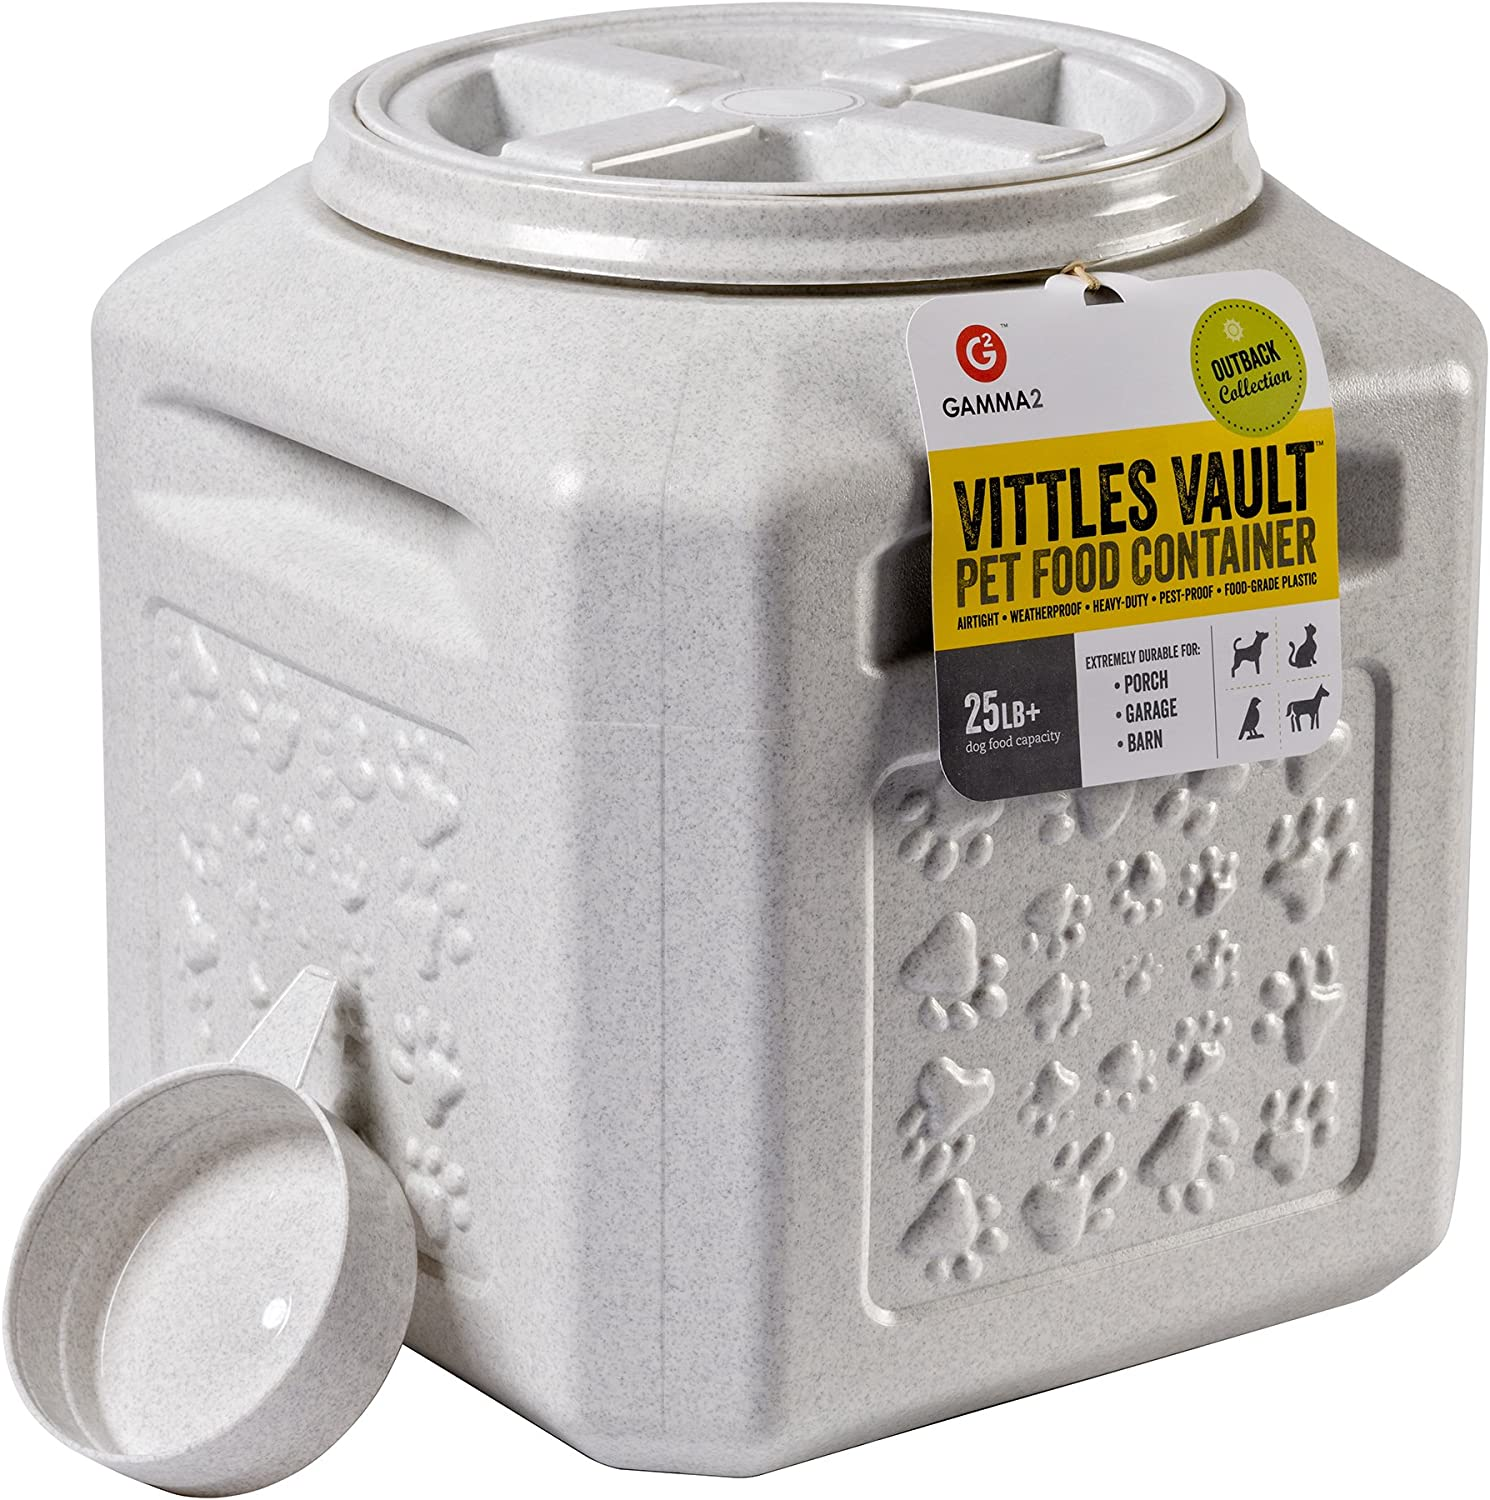 Pet Supplies : Vittles Vault Outback 25 lb Airtight Pet Food Storage Container : Pet Food Storage Products :